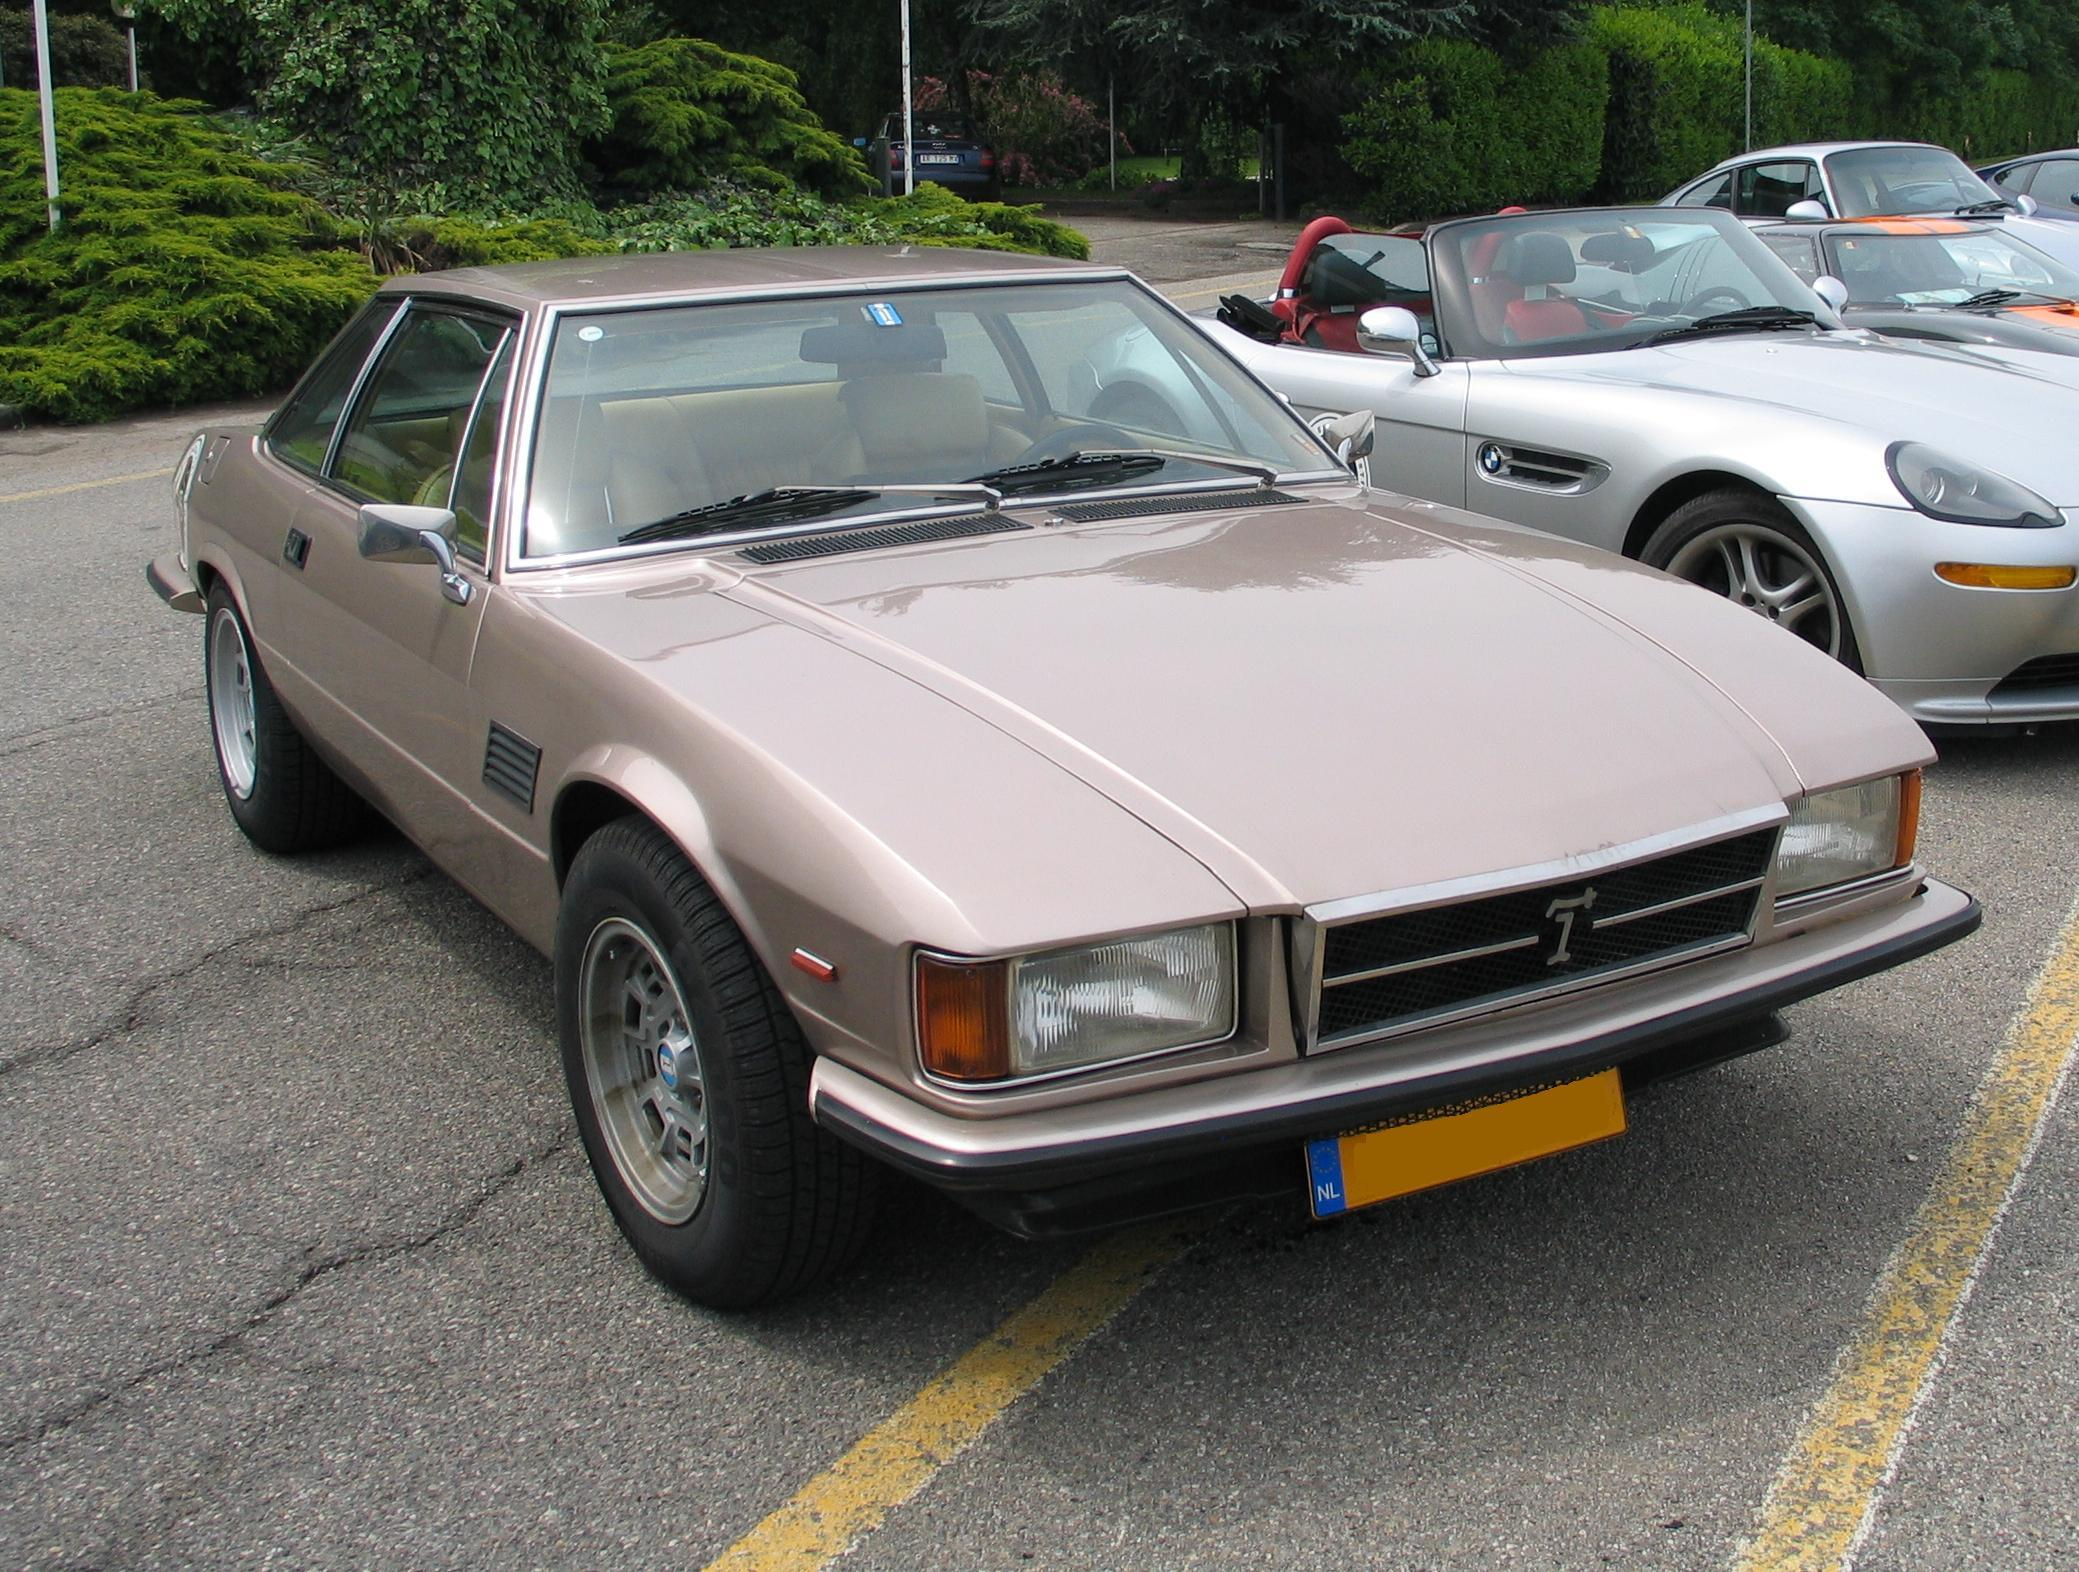 http://upload.wikimedia.org/wikipedia/commons/c/cf/DeTomaso_Longchamp.jpg